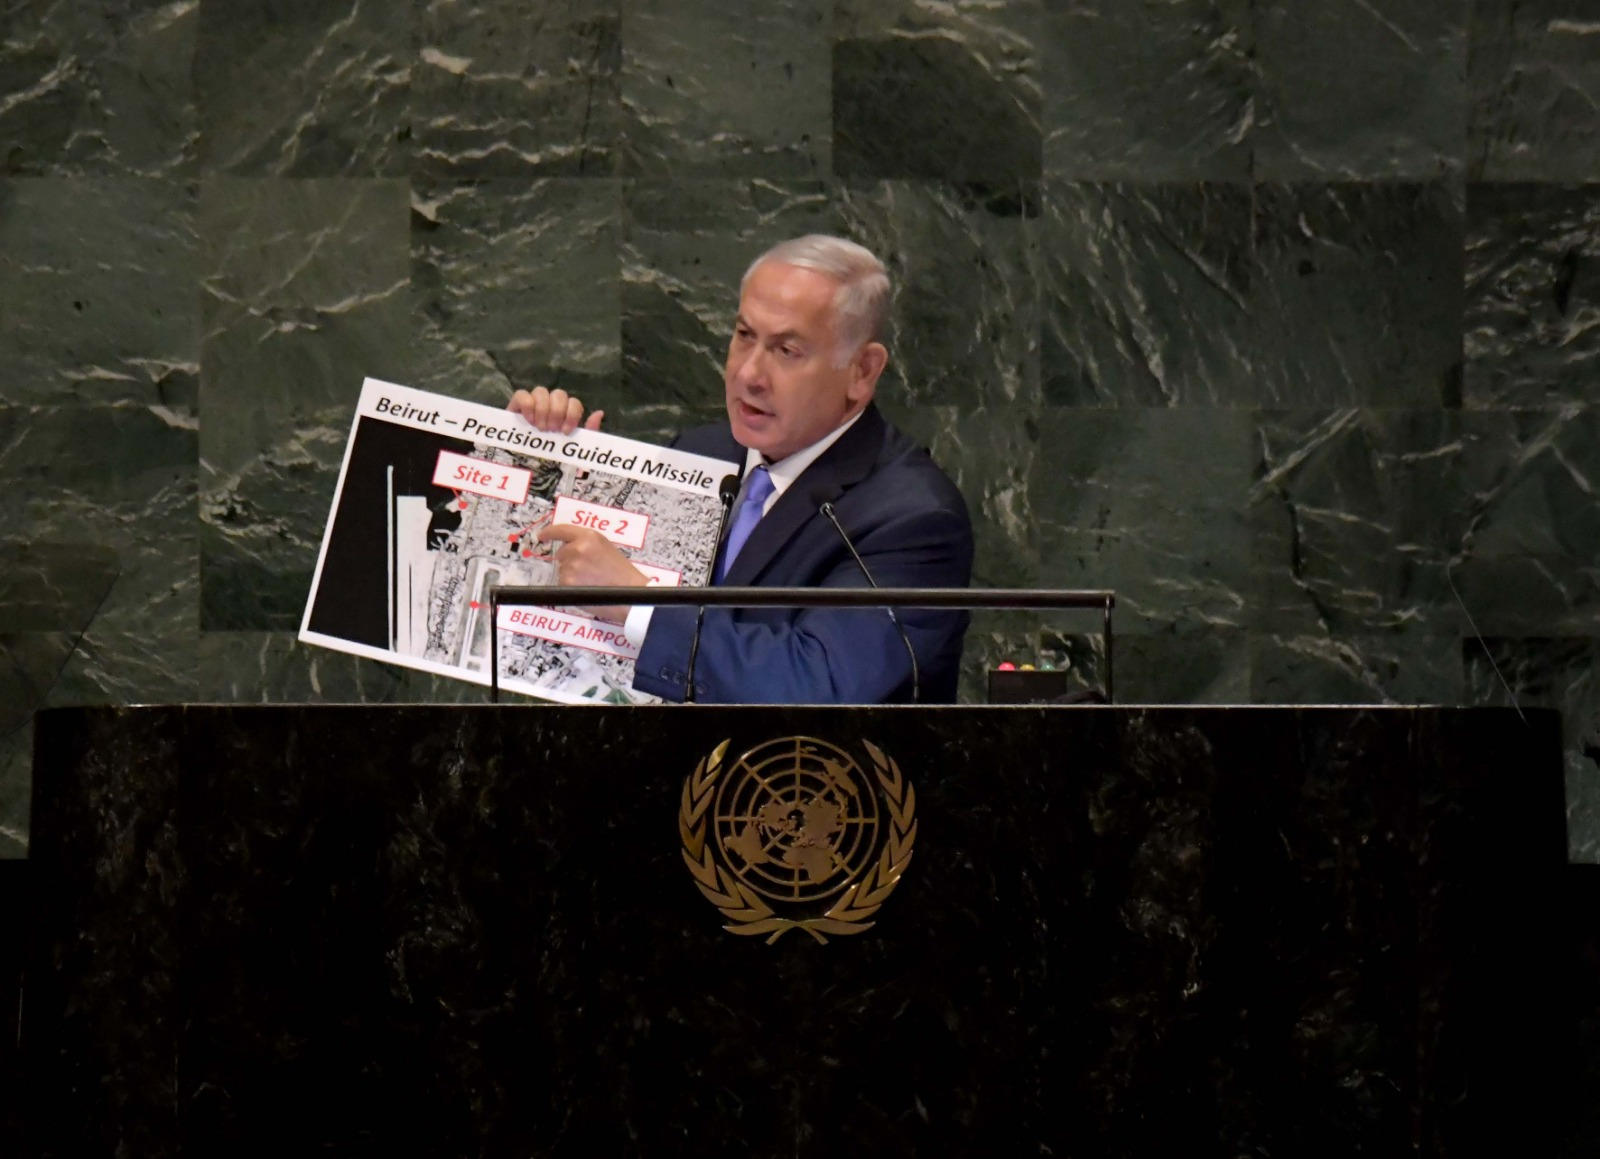 'The world will laugh at Netanyahu's anti-Iran show'